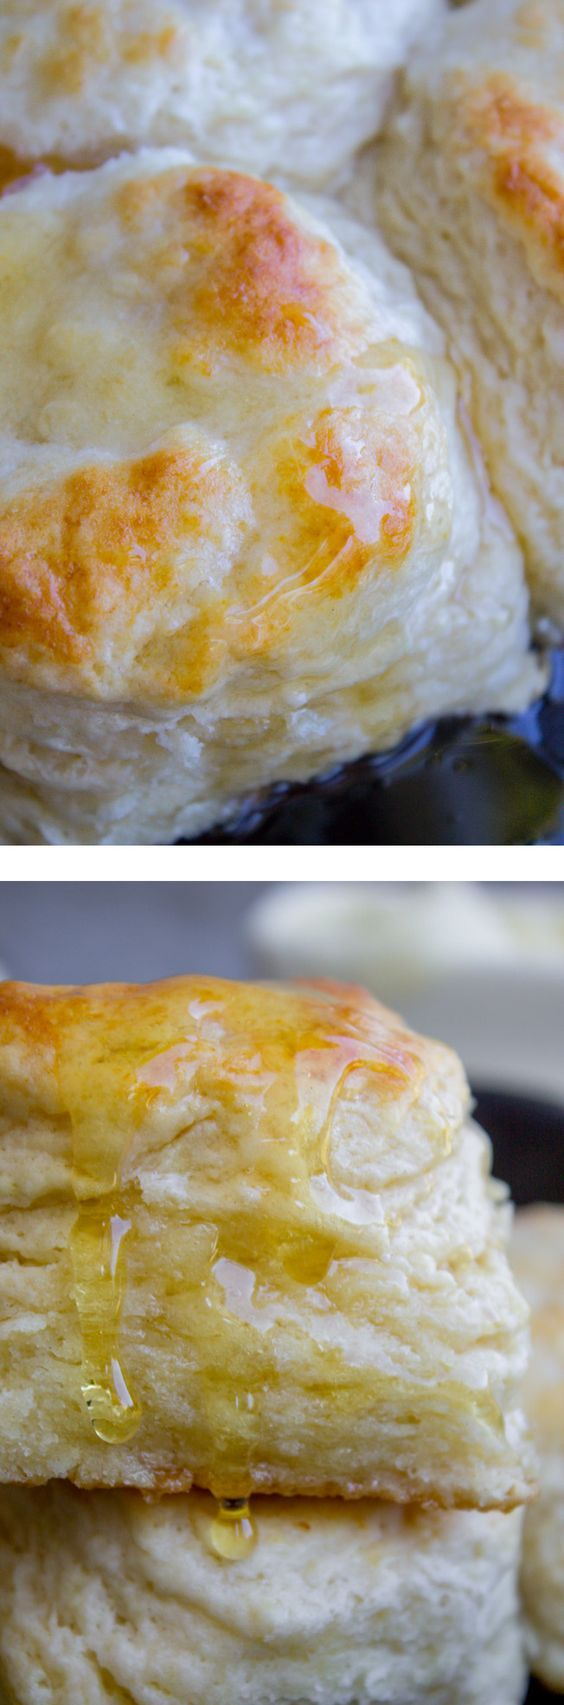 How to Make Ultra Flaky Buttermilk Biscuits from The Food Charlatan. Who can resist a crispy-on-the-outside, tender-in-the-middle, mile-high flaky buttermilk biscuit? It's the perfect comfort food! Here's how to make them. It's not hard, just a few simple tricks! This is so delicious with some butter and honey.